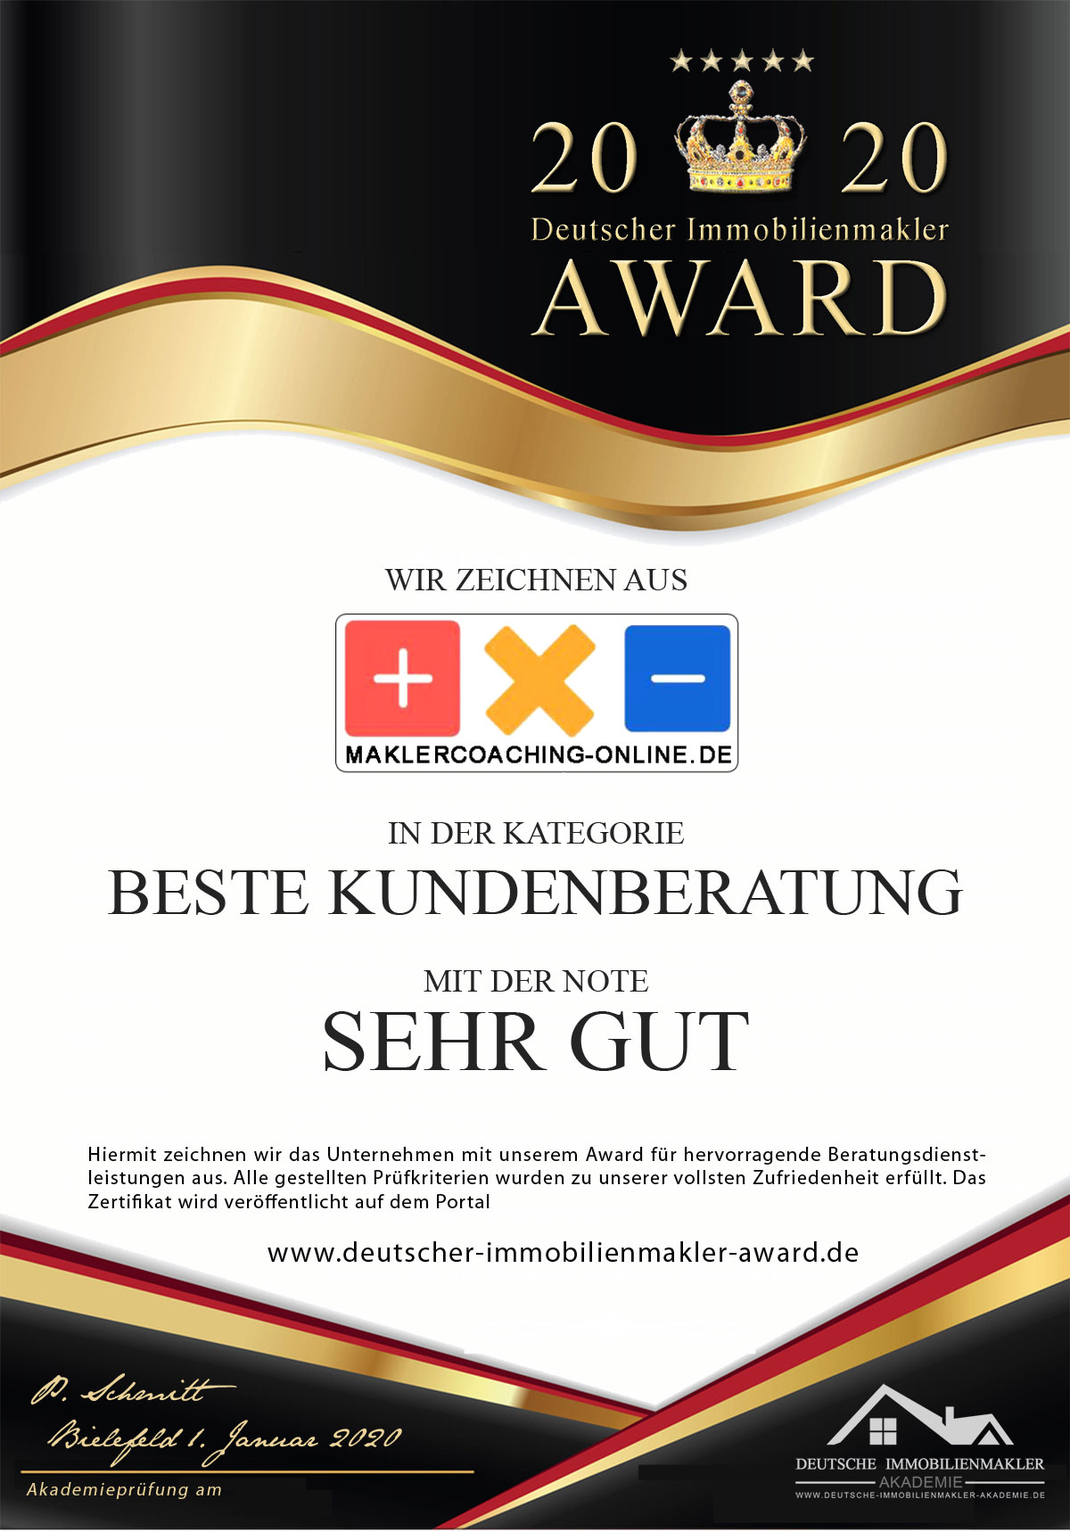 MAKLEREMPFEHLUNG ANDREAS HAUFS IMMOBILIEN HAMBURG MAKLER AWARD MAKLER AUSZEICHNUNG IMMOBILIENMAKLER AUSZEICHNUNG IMMOBILIENMAKLER AWARD MAKLER ZERTIFIKAT